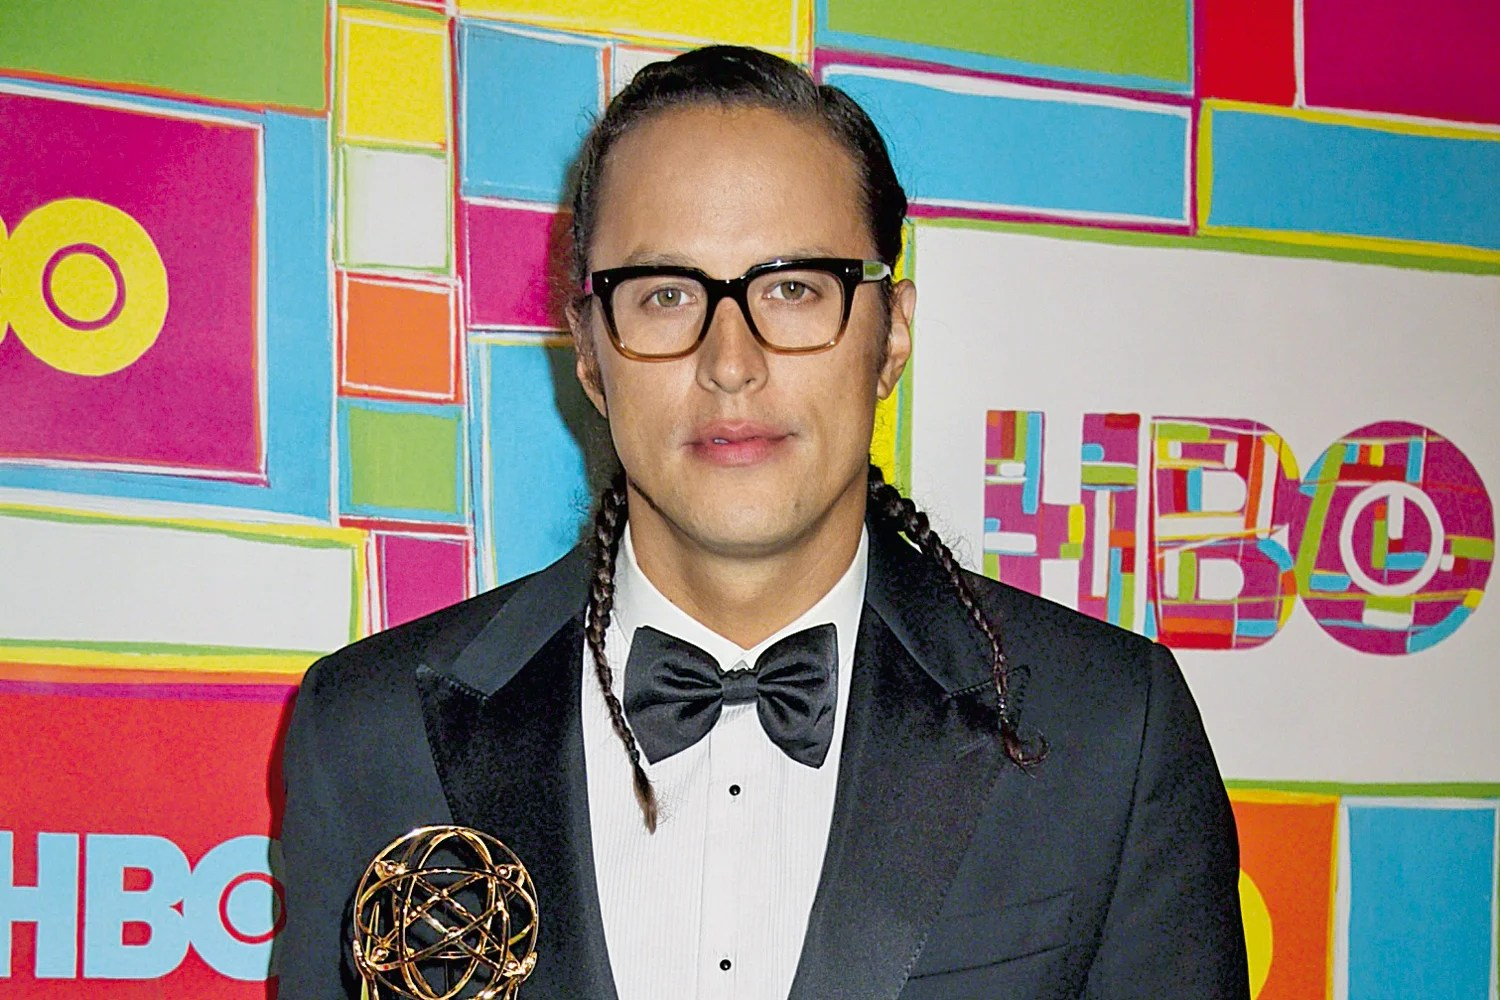 The Crush  Cary Joji Fukunaga   London Evening Standard The director with the braids makes the cut